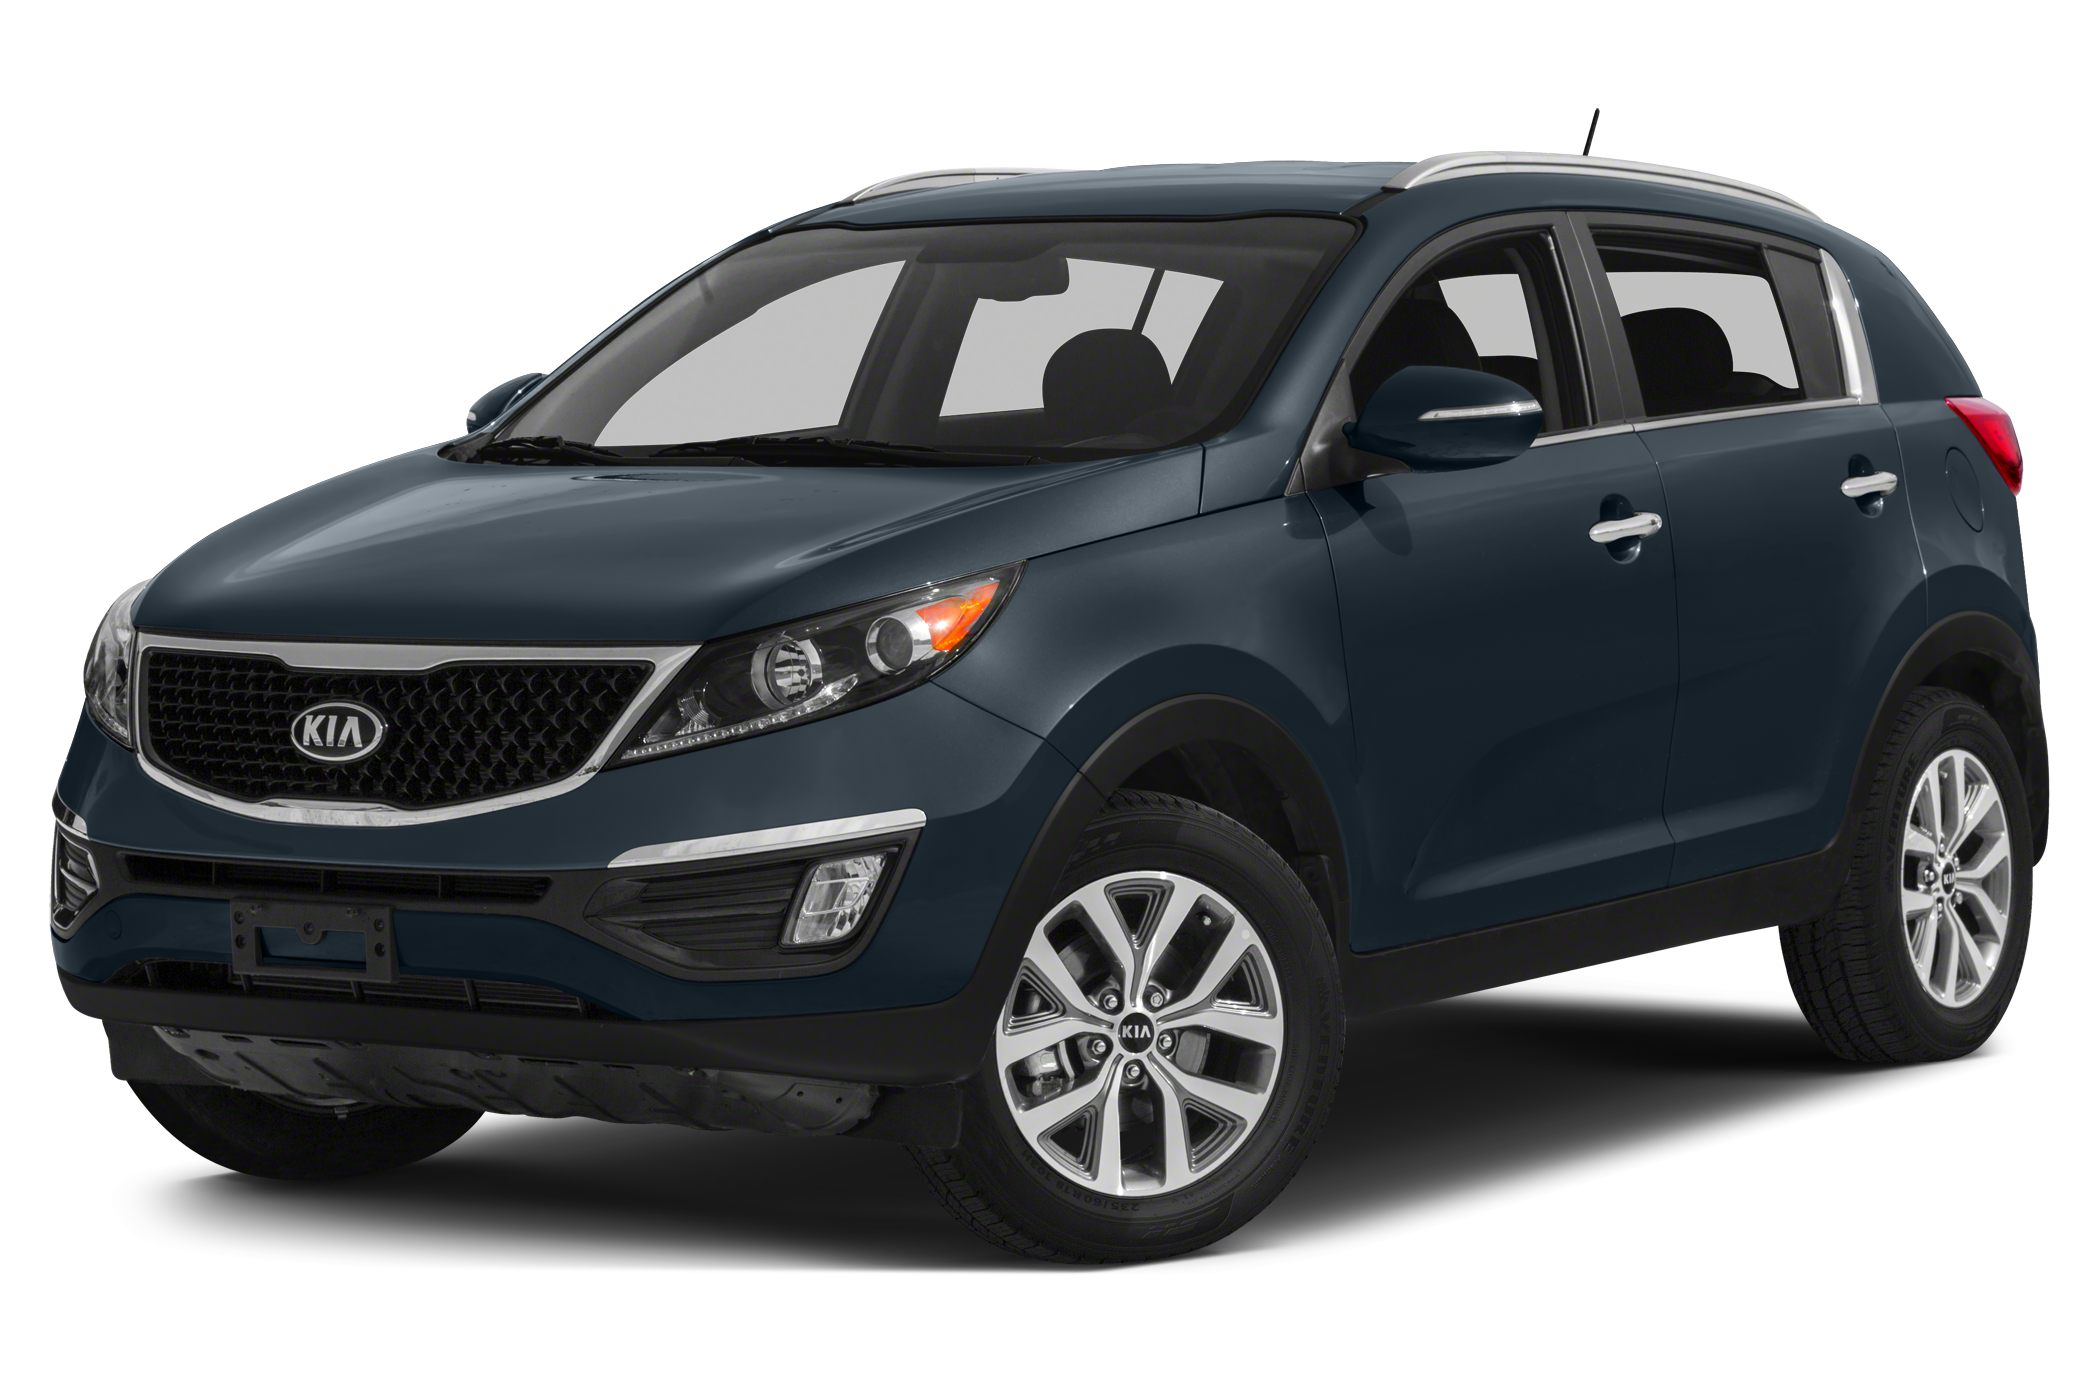 2015 Kia Sportage LX SUV for sale in Springfield for $26,170 with 0 miles